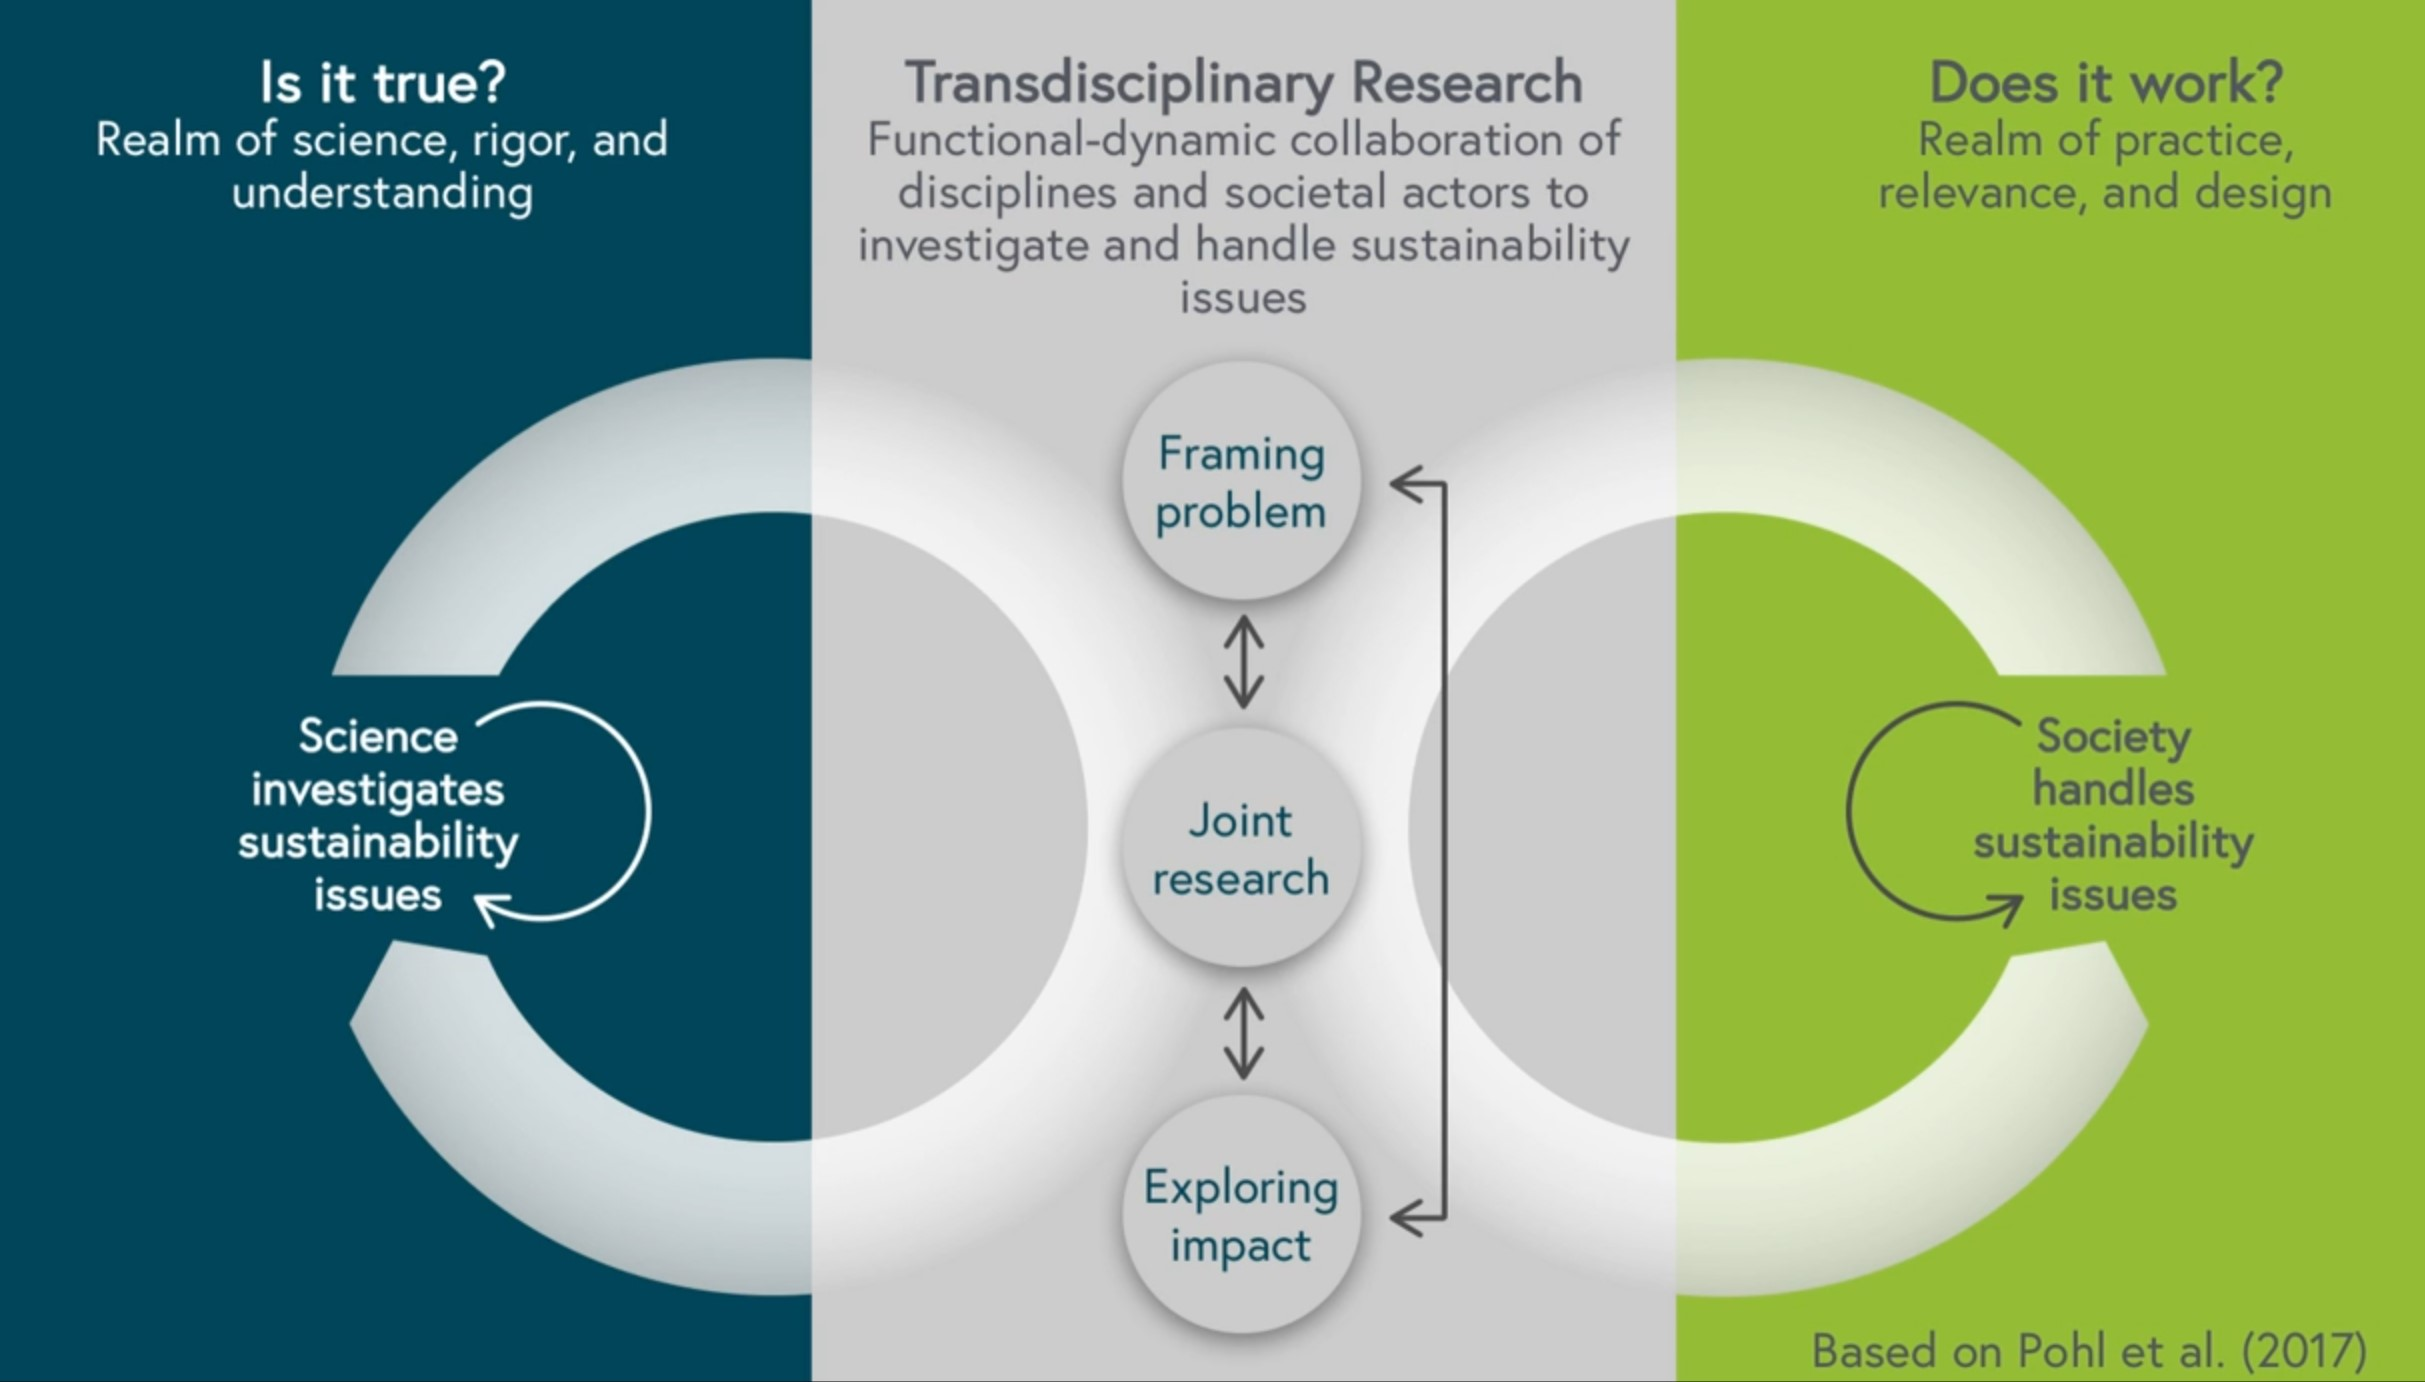 The three phases of transdisciplinary research. (Based on Pohl et al., 2017)